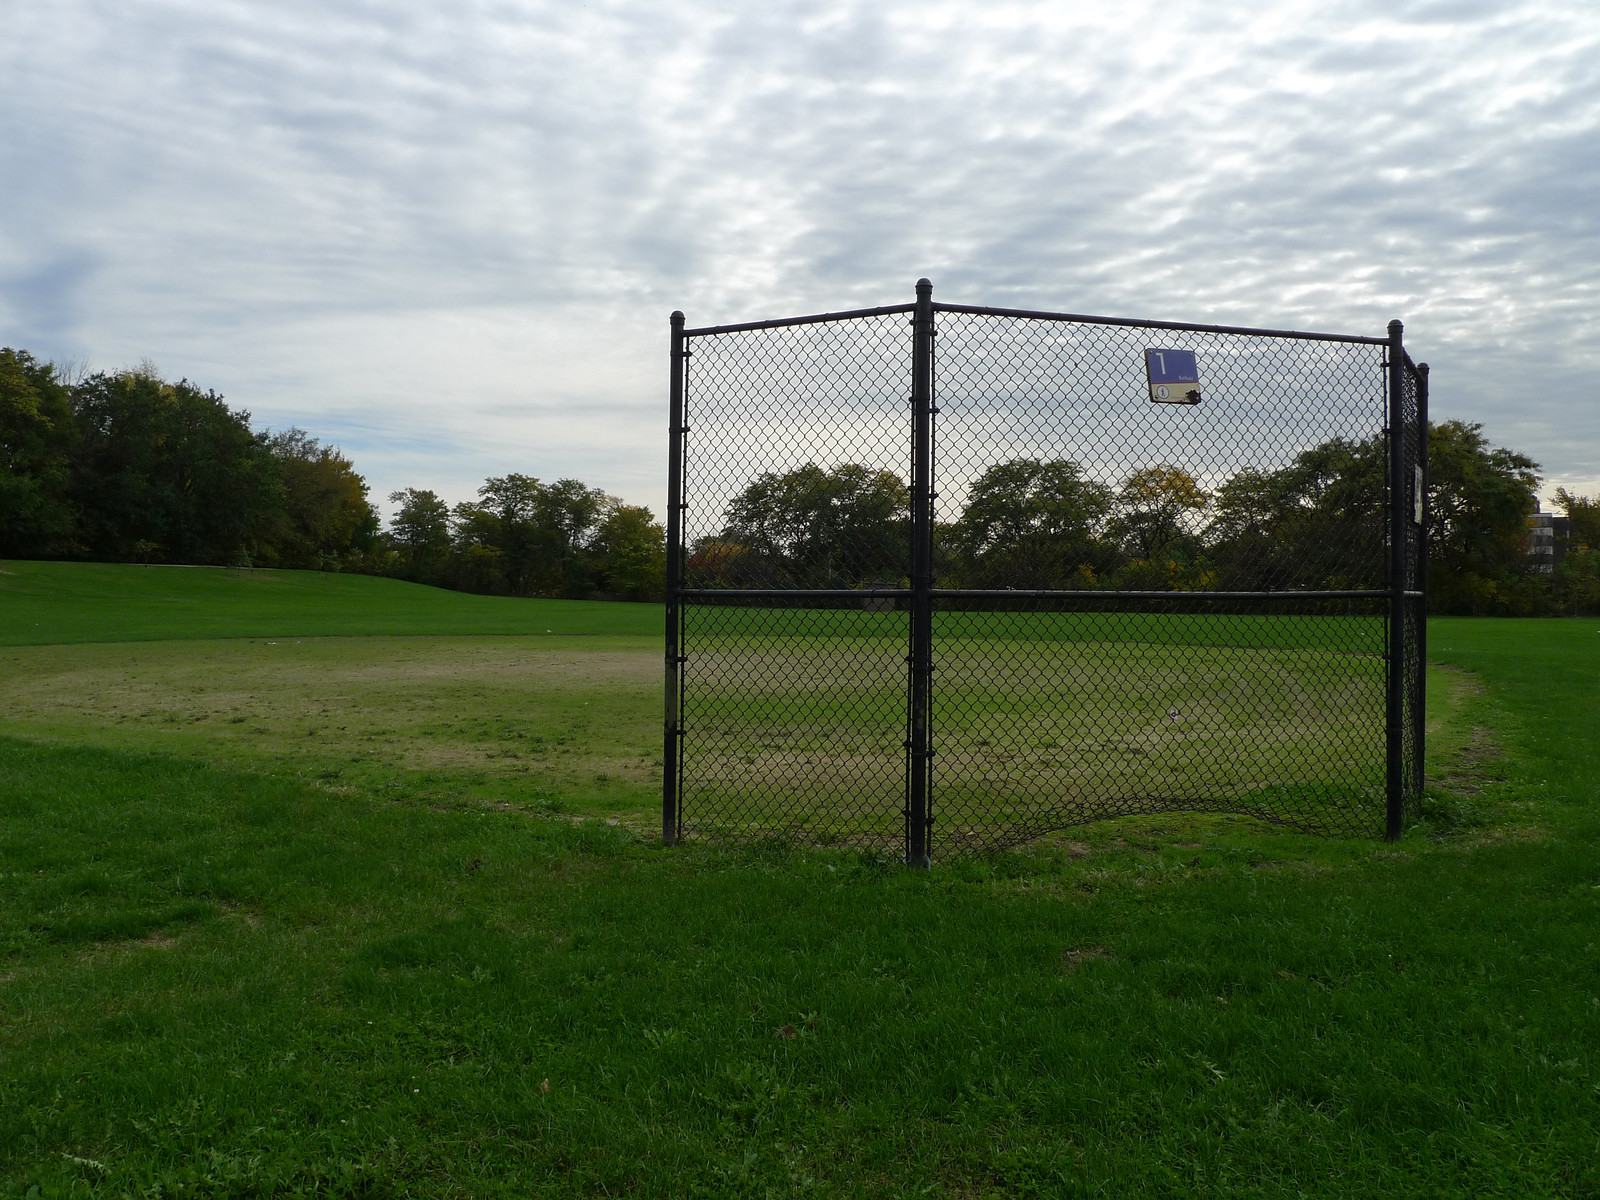 diamond reclamation (Columbus Park Ballfield #1) | by find myself a city (1001 Afternoons in Chicago)